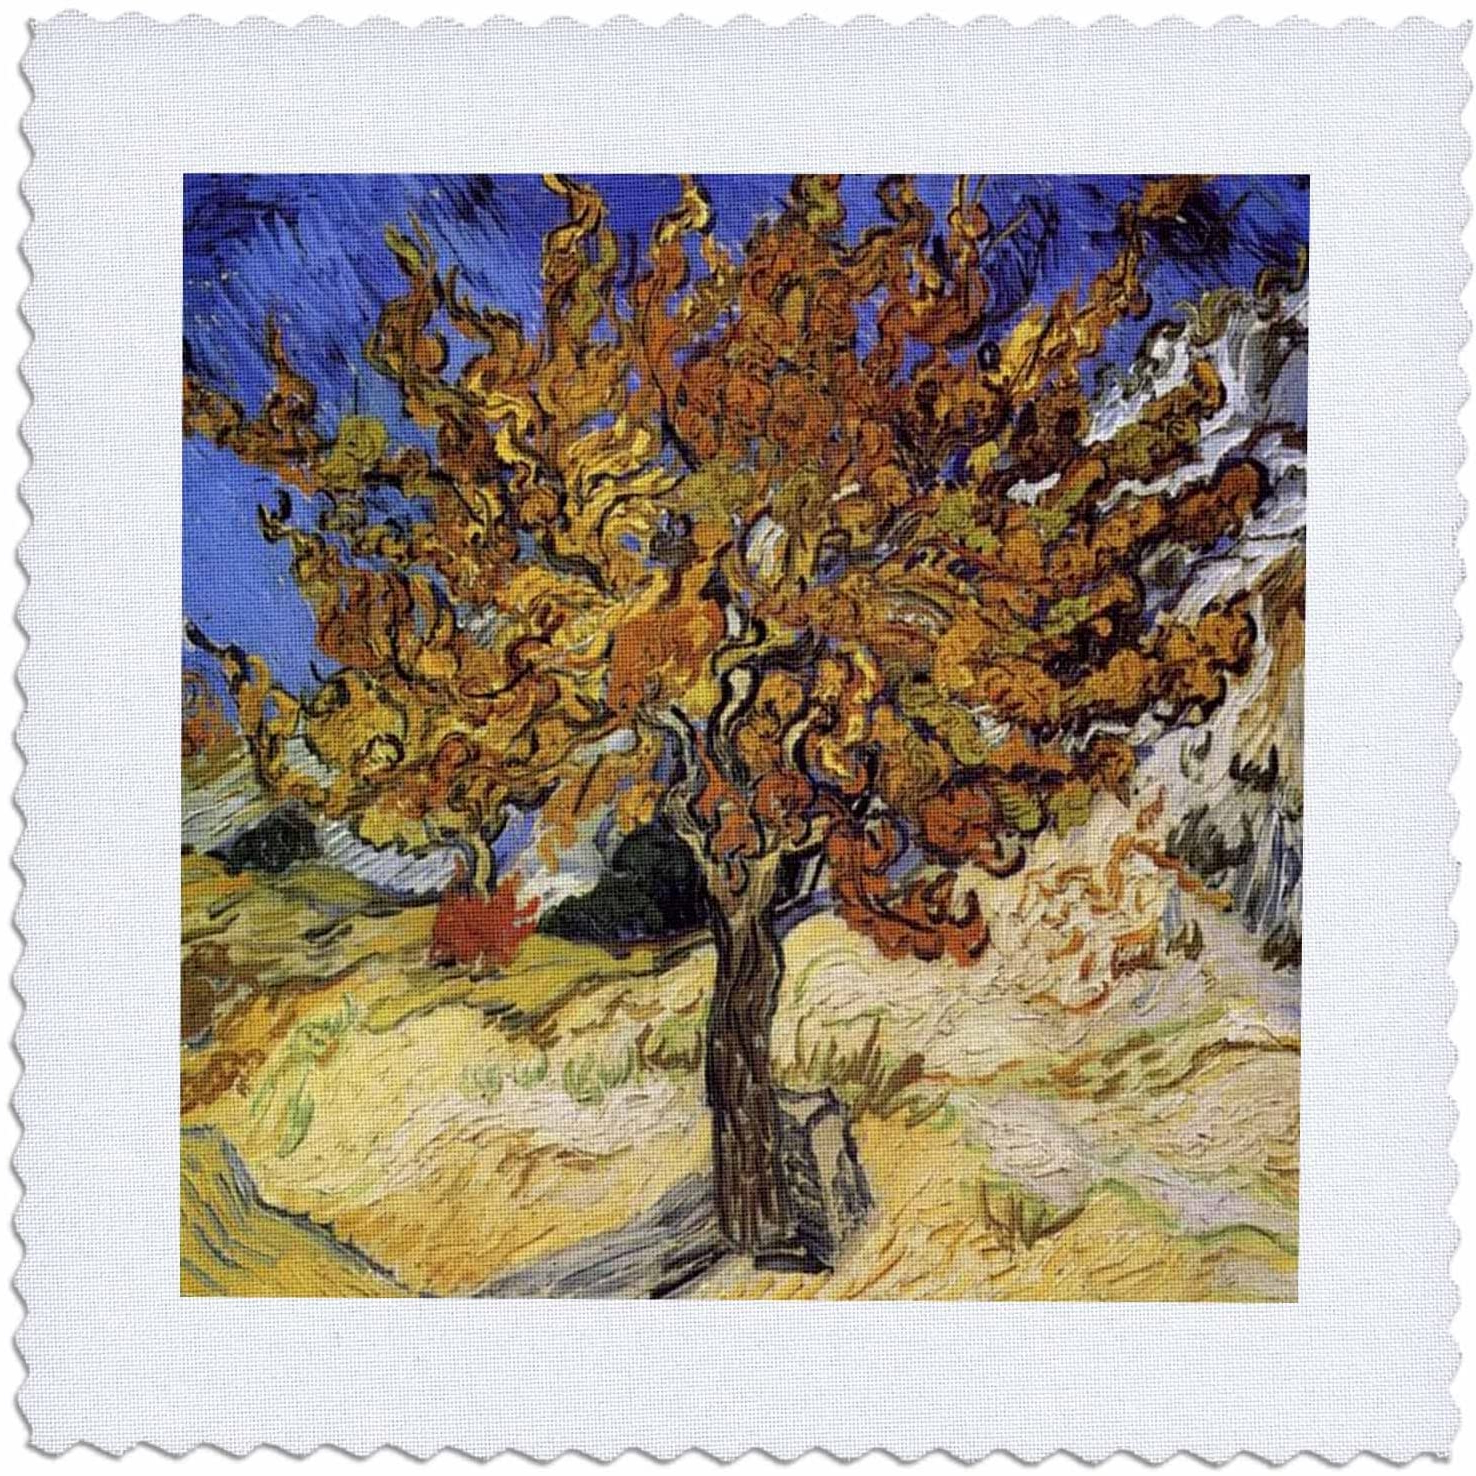 2019 Blended Fabric The Mulberry Tree – Van Gogh Wall Hangings Throughout Amazon: 3drose Van Gogh Mulberry Tree Quilt Square, (View 2 of 20)